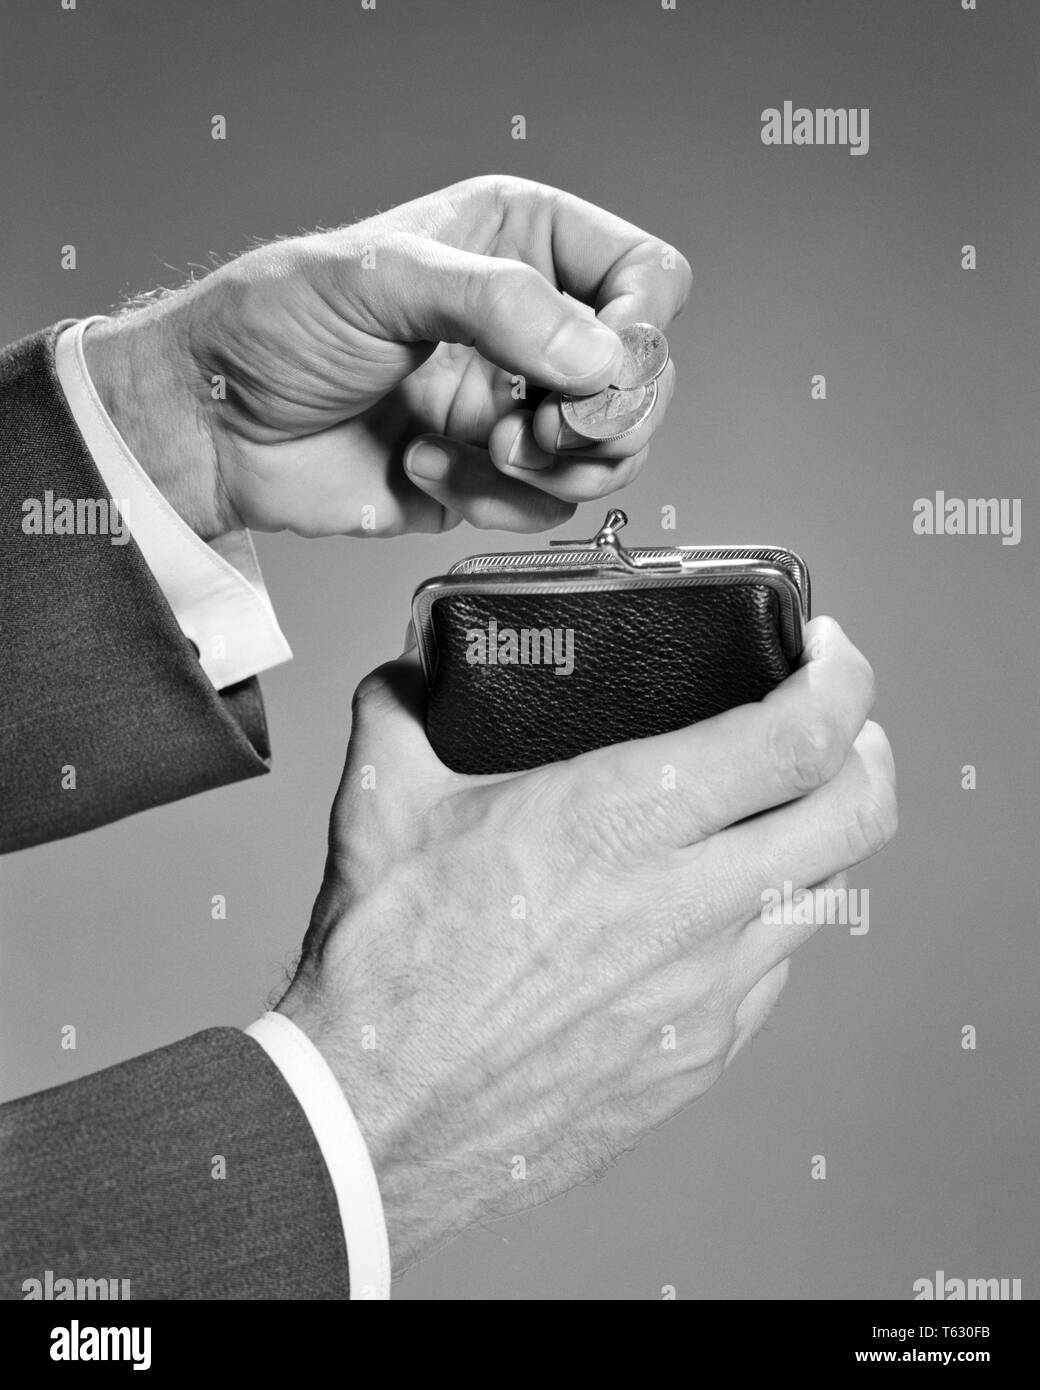 1960s MALE HANDS DROPPING COINS QUARTER AND DIME INTO A CHANGE PURSE - s13875 HAR001 HARS MID-ADULT MID-ADULT MAN BLACK AND WHITE CAUCASIAN ETHNICITY HANDS ONLY HAR001 OLD FASHIONED - Stock Image